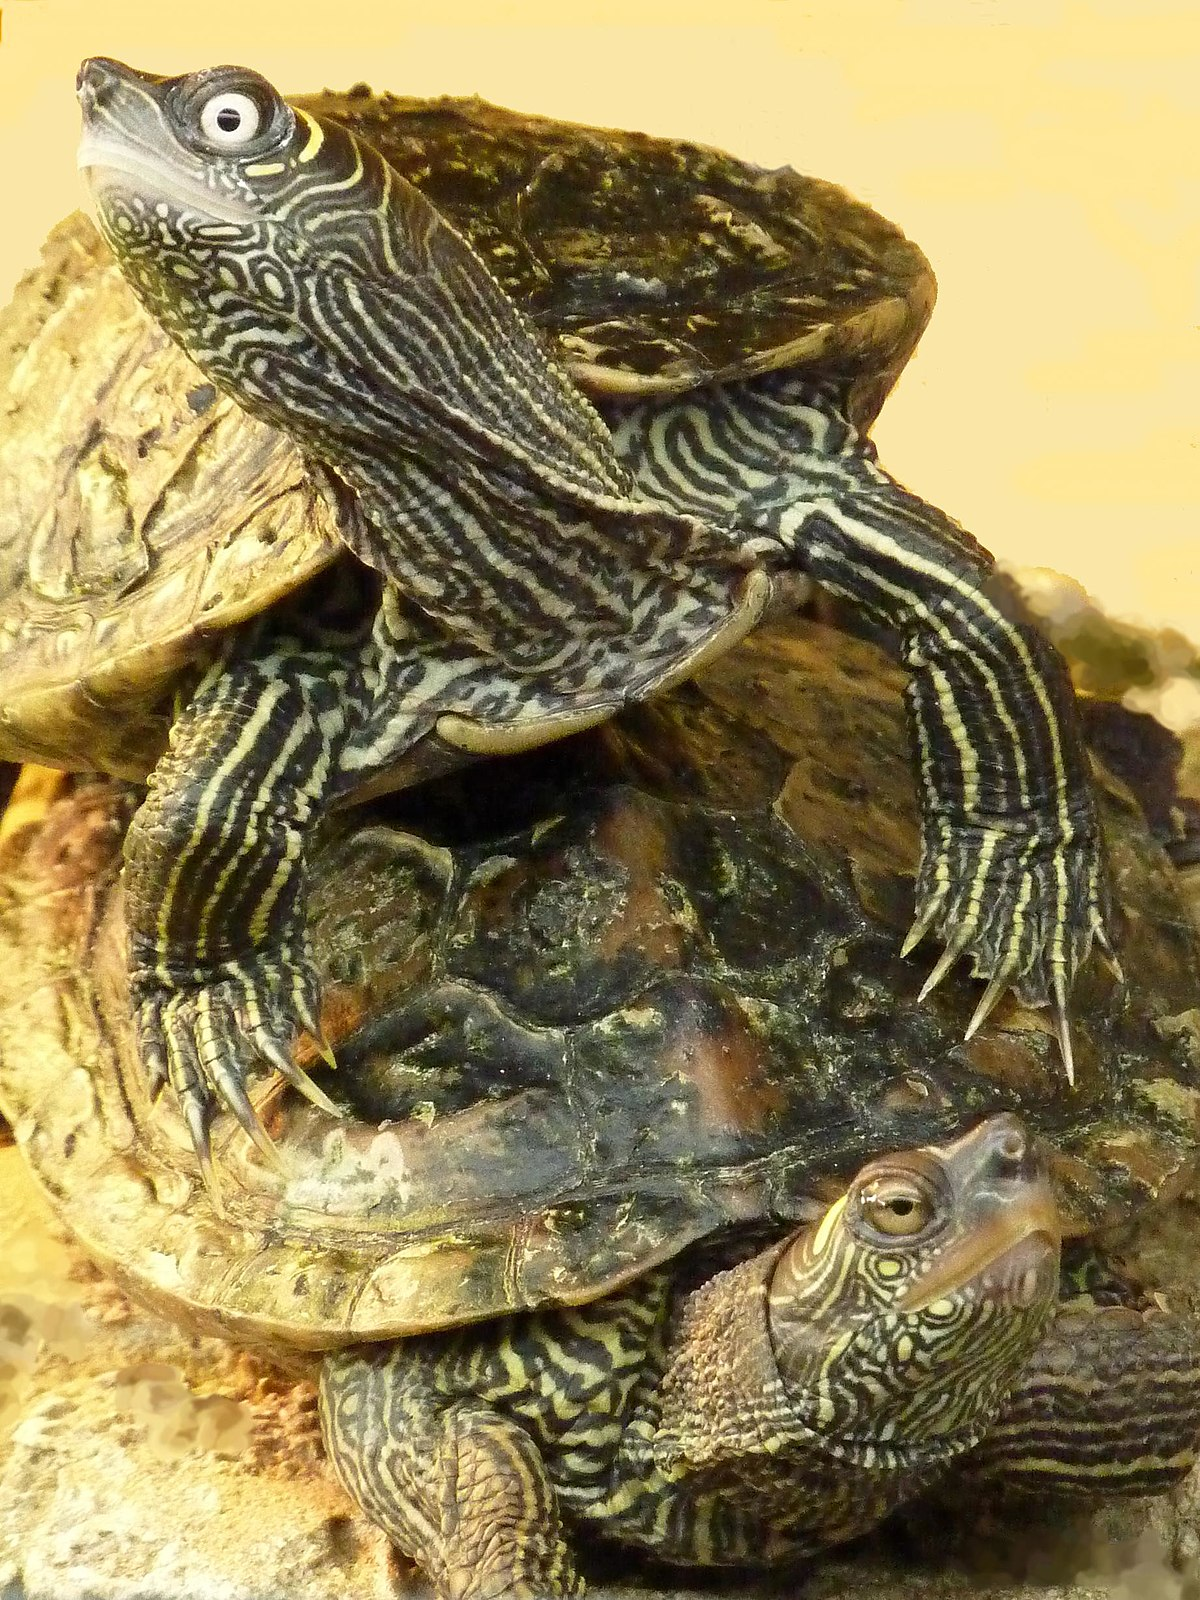 mississippi map turtle male or female Mississippi Map Turtle Wikipedia mississippi map turtle male or female